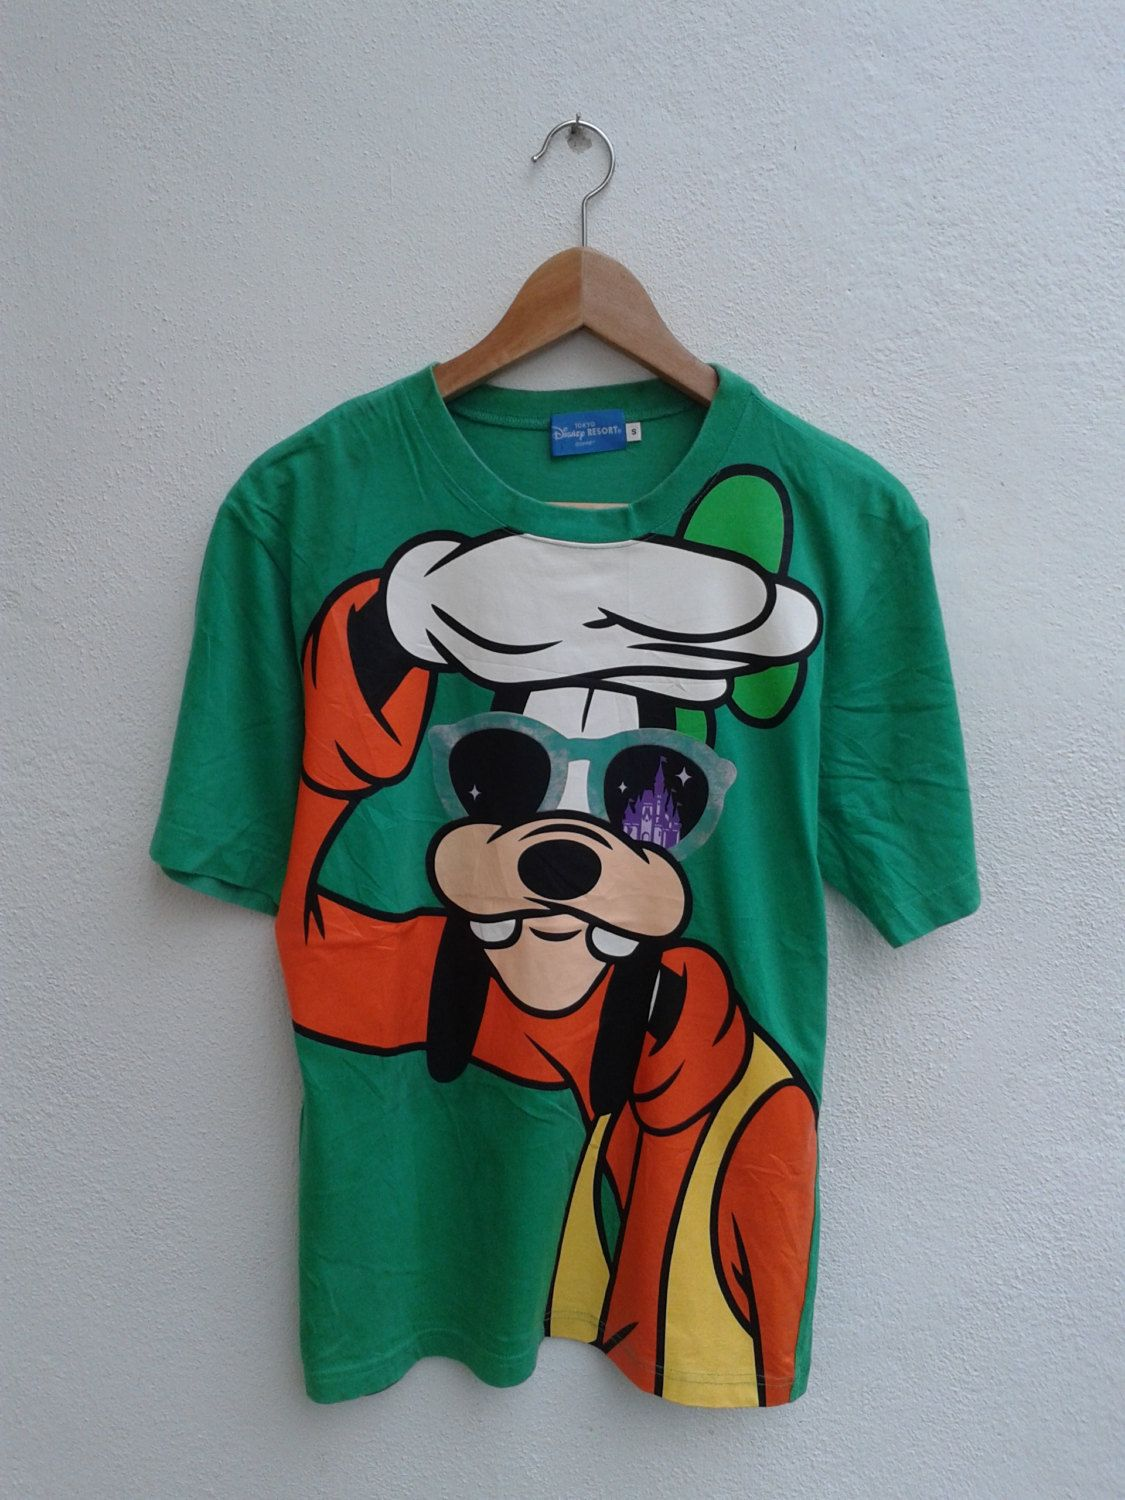 7592070518d 20% YEAR END SALES Vintage 90s Walt Disney Goofy Funny Cartoon Big Graphic  Printed Mickey Mouse Vtg T-shirt -  16.80 USD